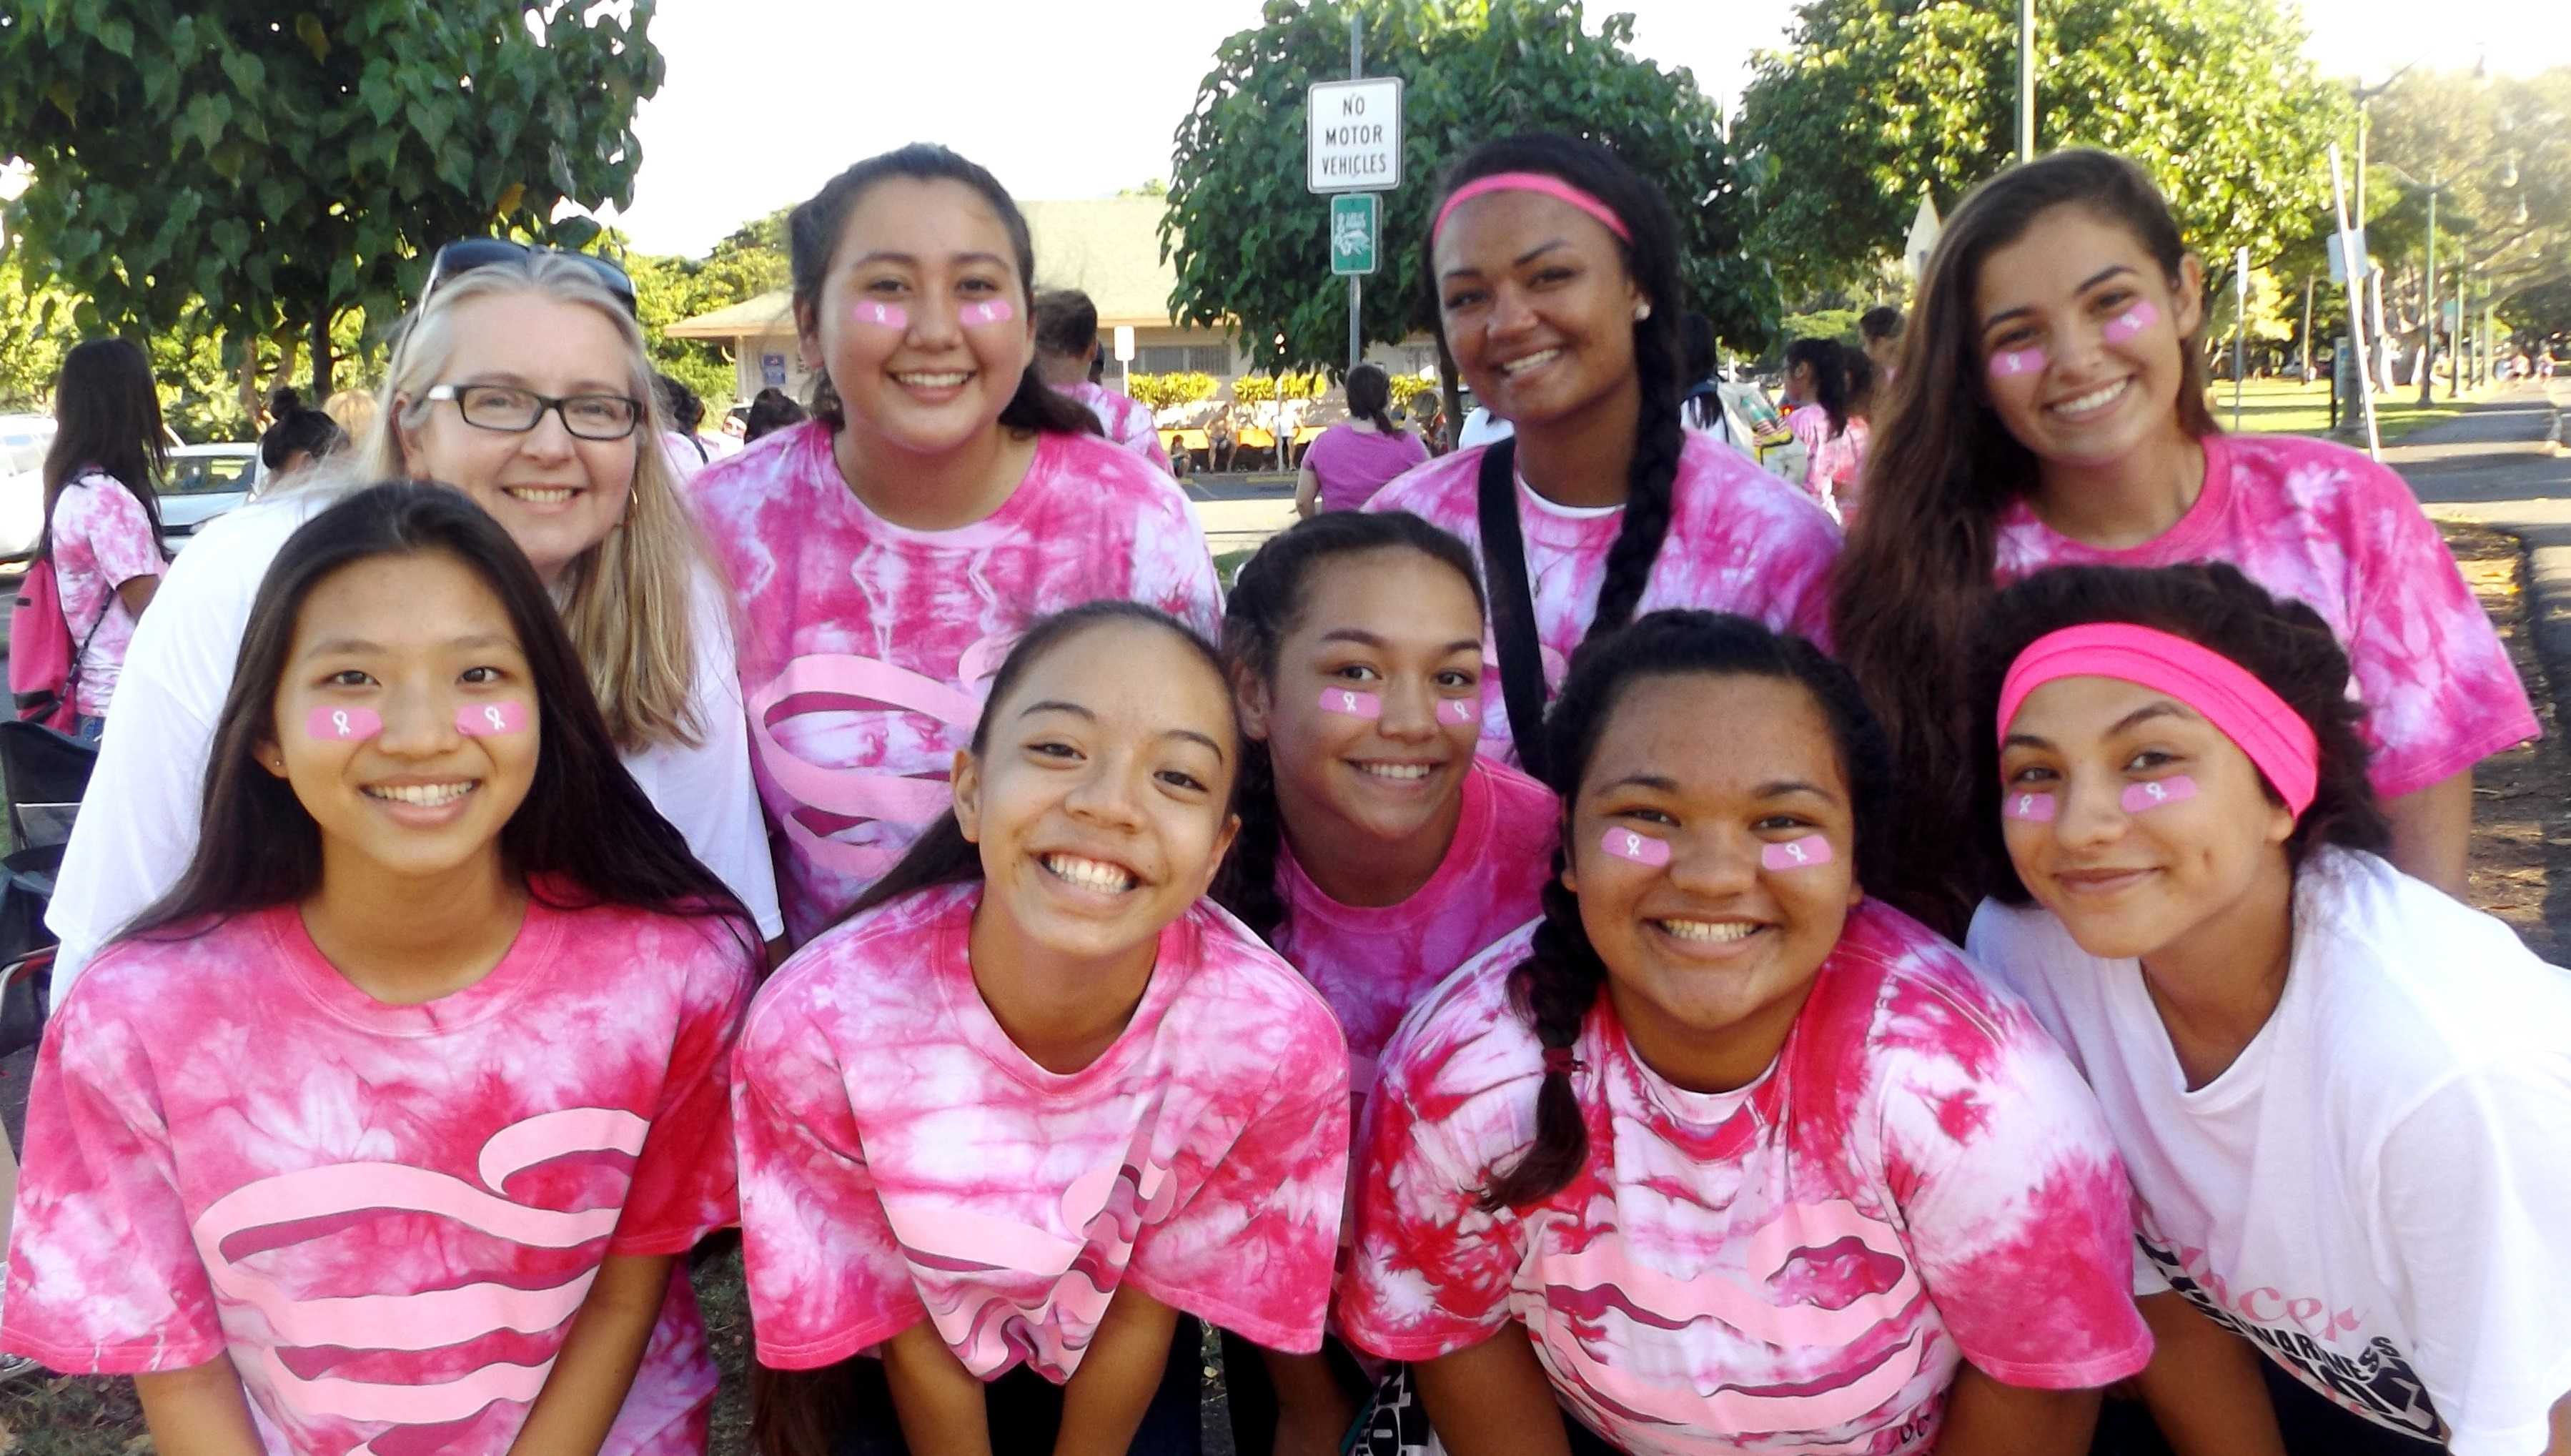 Students volunteered at the Susan G. Komen Race for the Cure with Vice-principal Kinga Sanders  Photo courtesy of Janelle Medrano